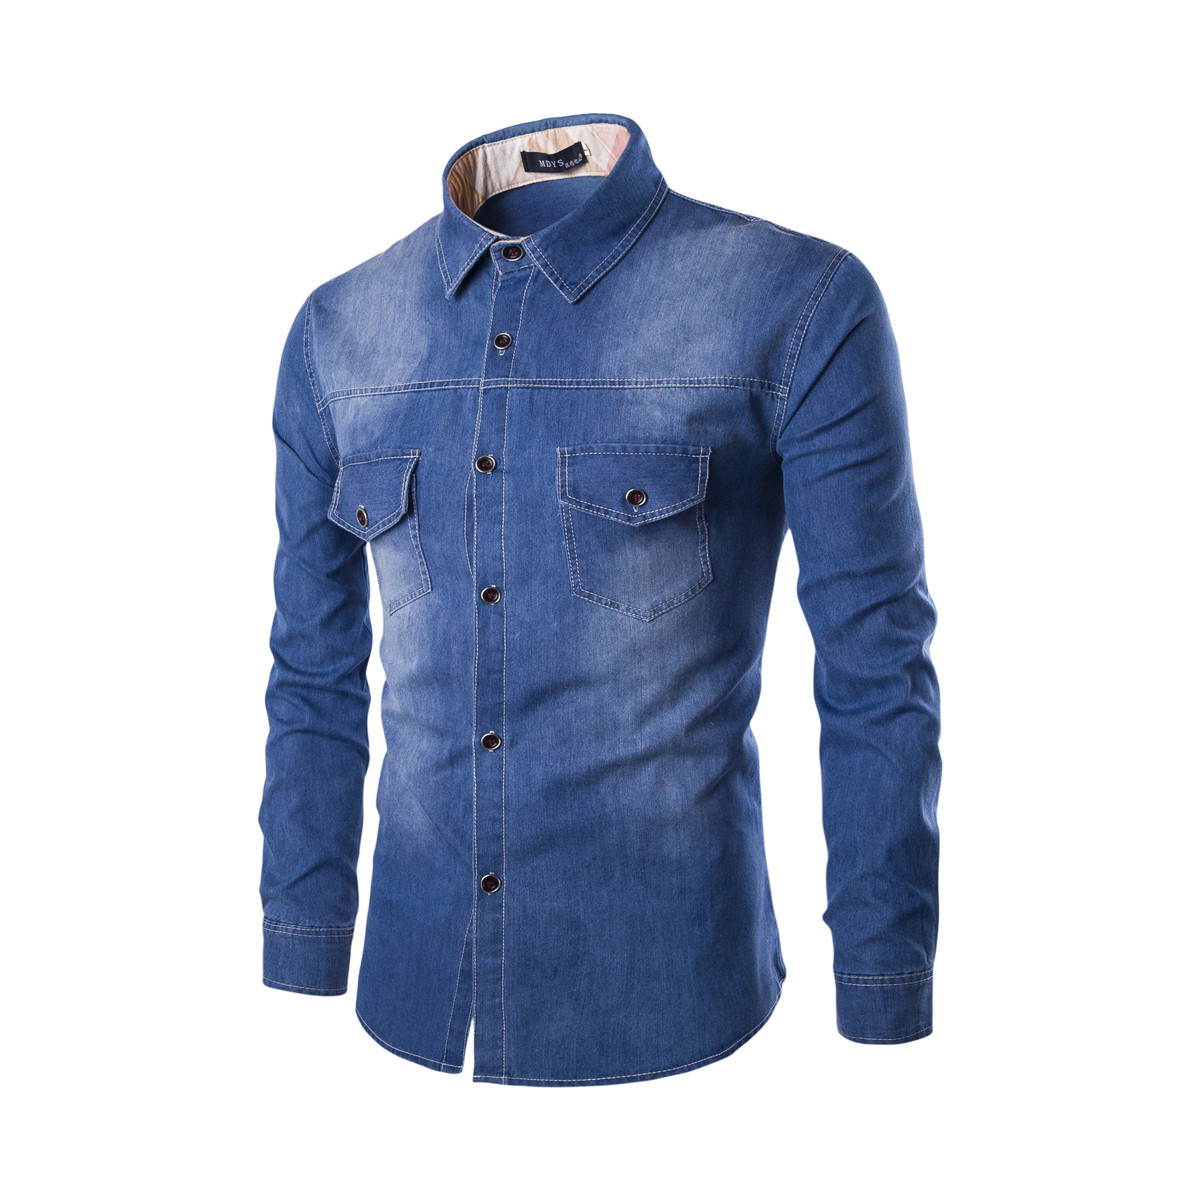 8fc7de8f76 Mens Denim Shirt Cotton Two Pockets Male Long Sleeve Slim Fit Casual Jeans  Shirt M-6xl blue